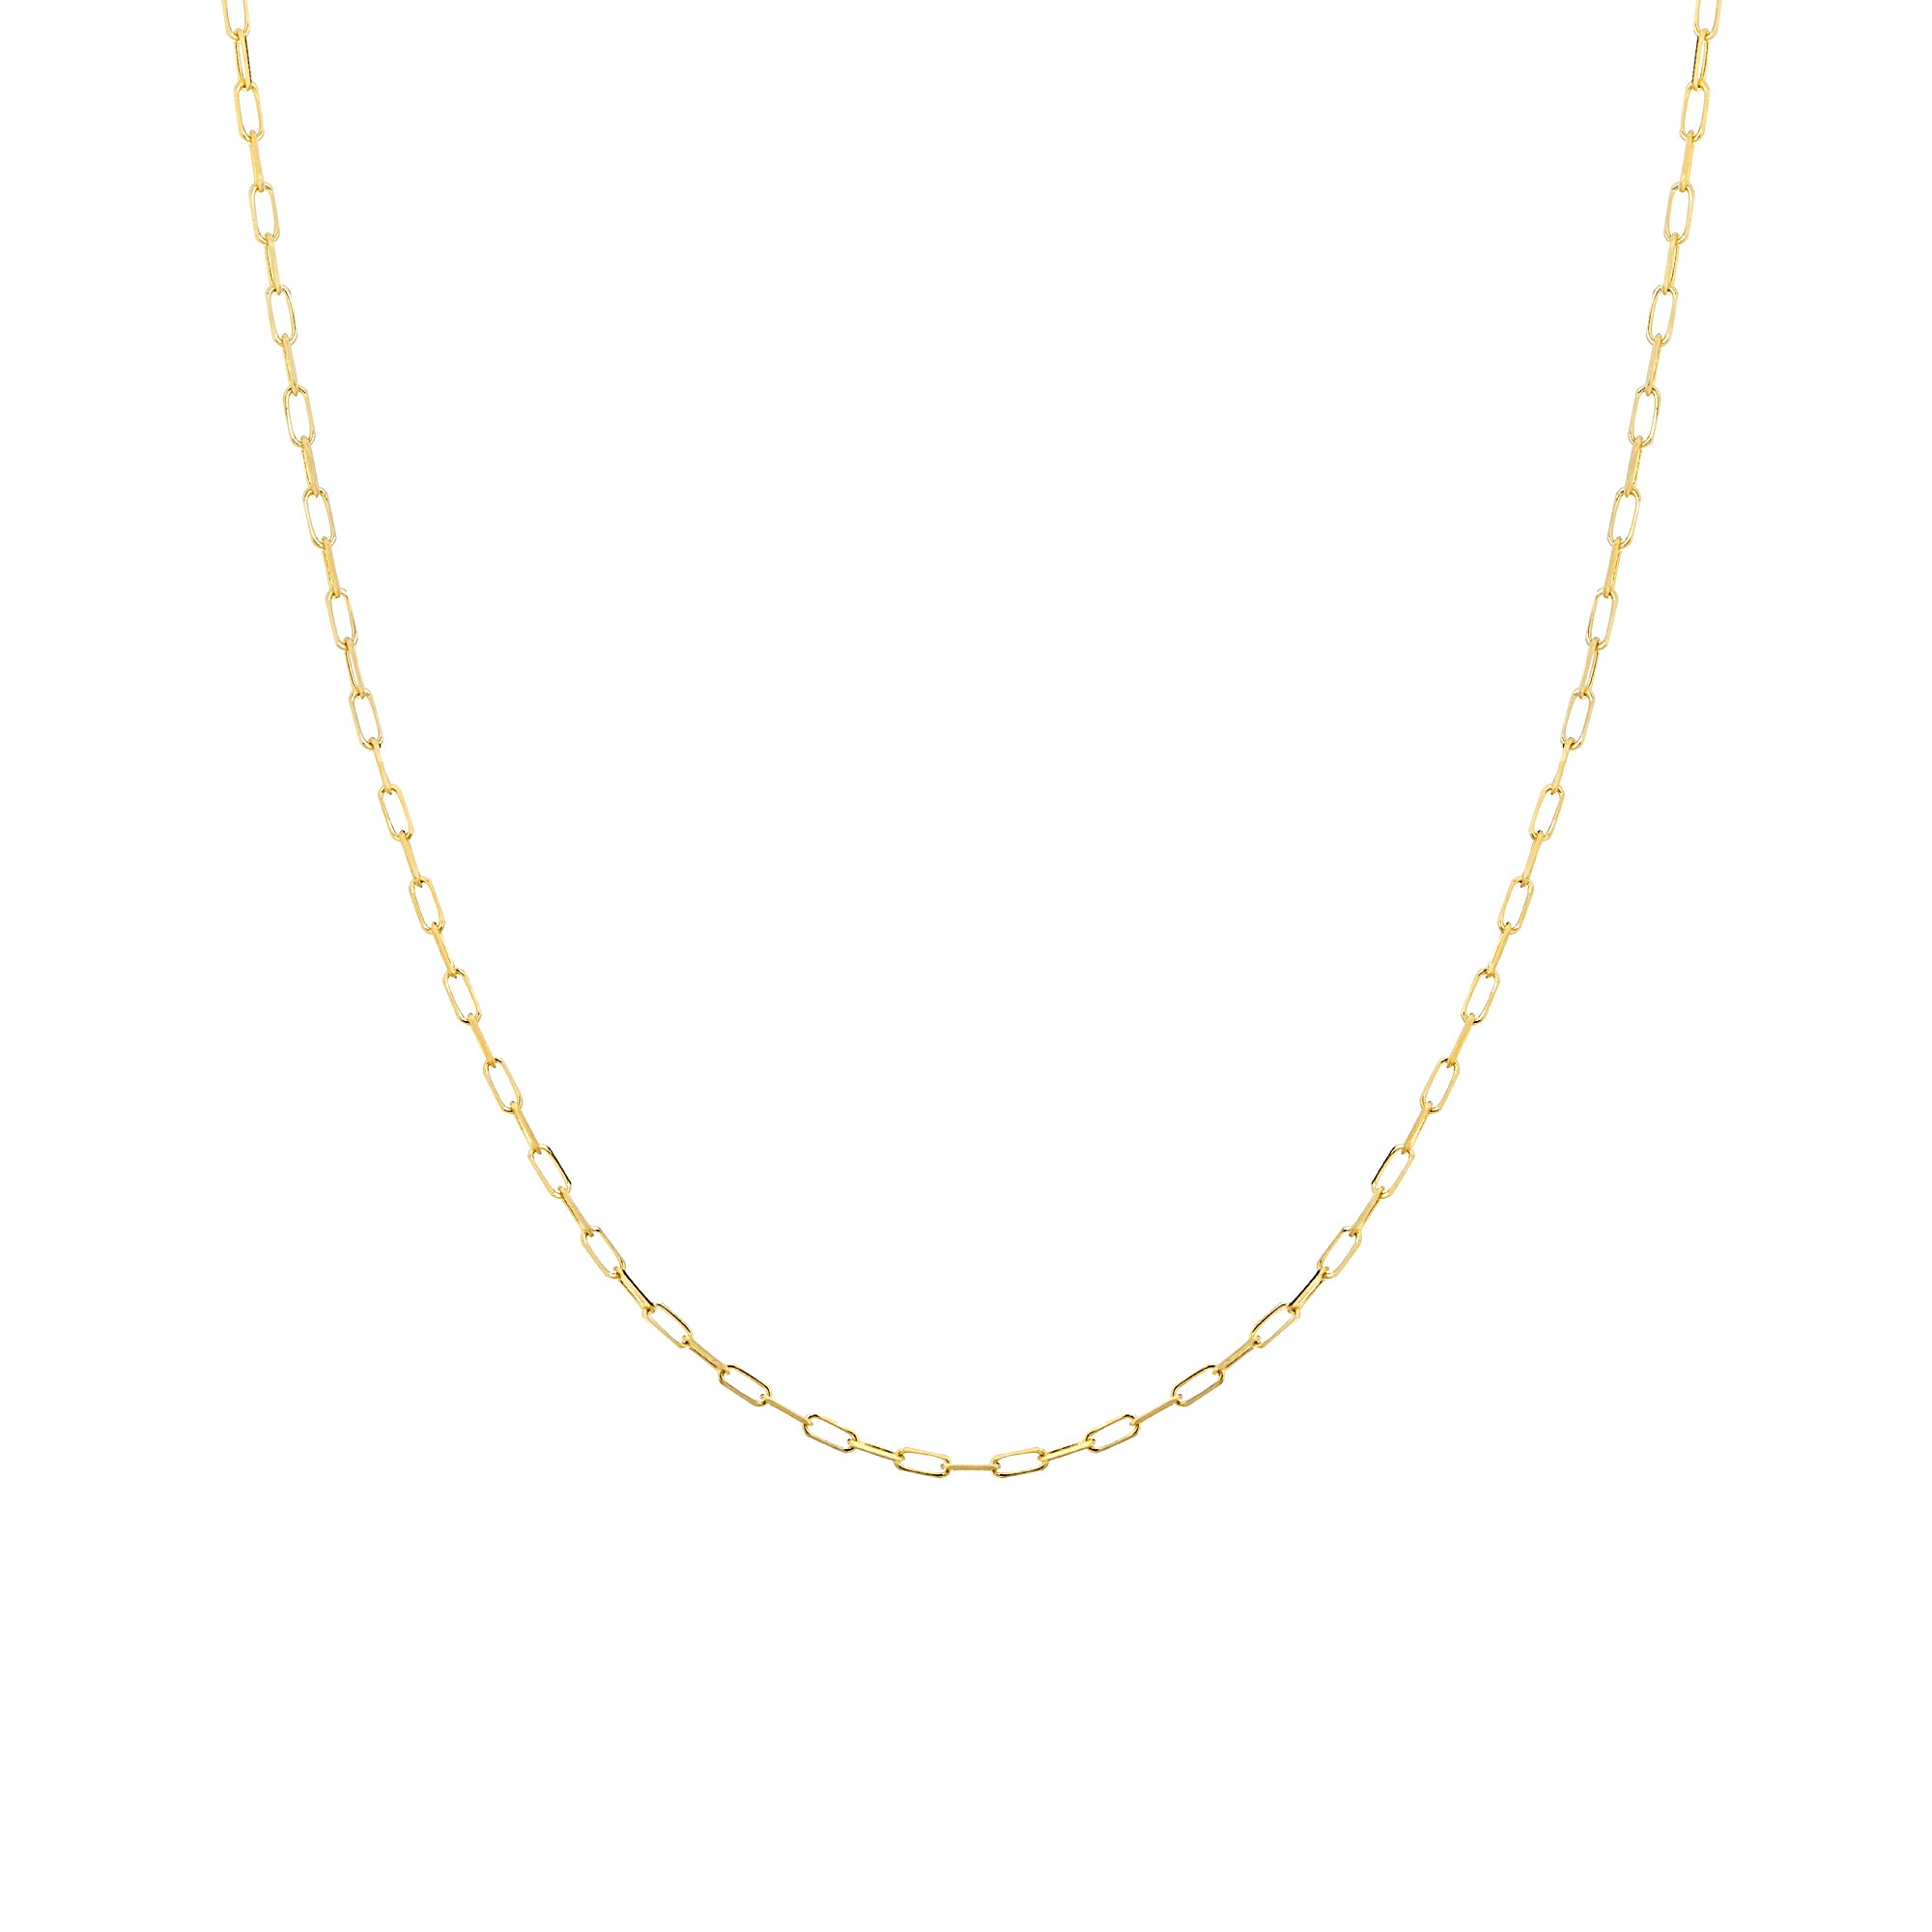 for women designs designer chains buy necklace gold l classic necklaces online